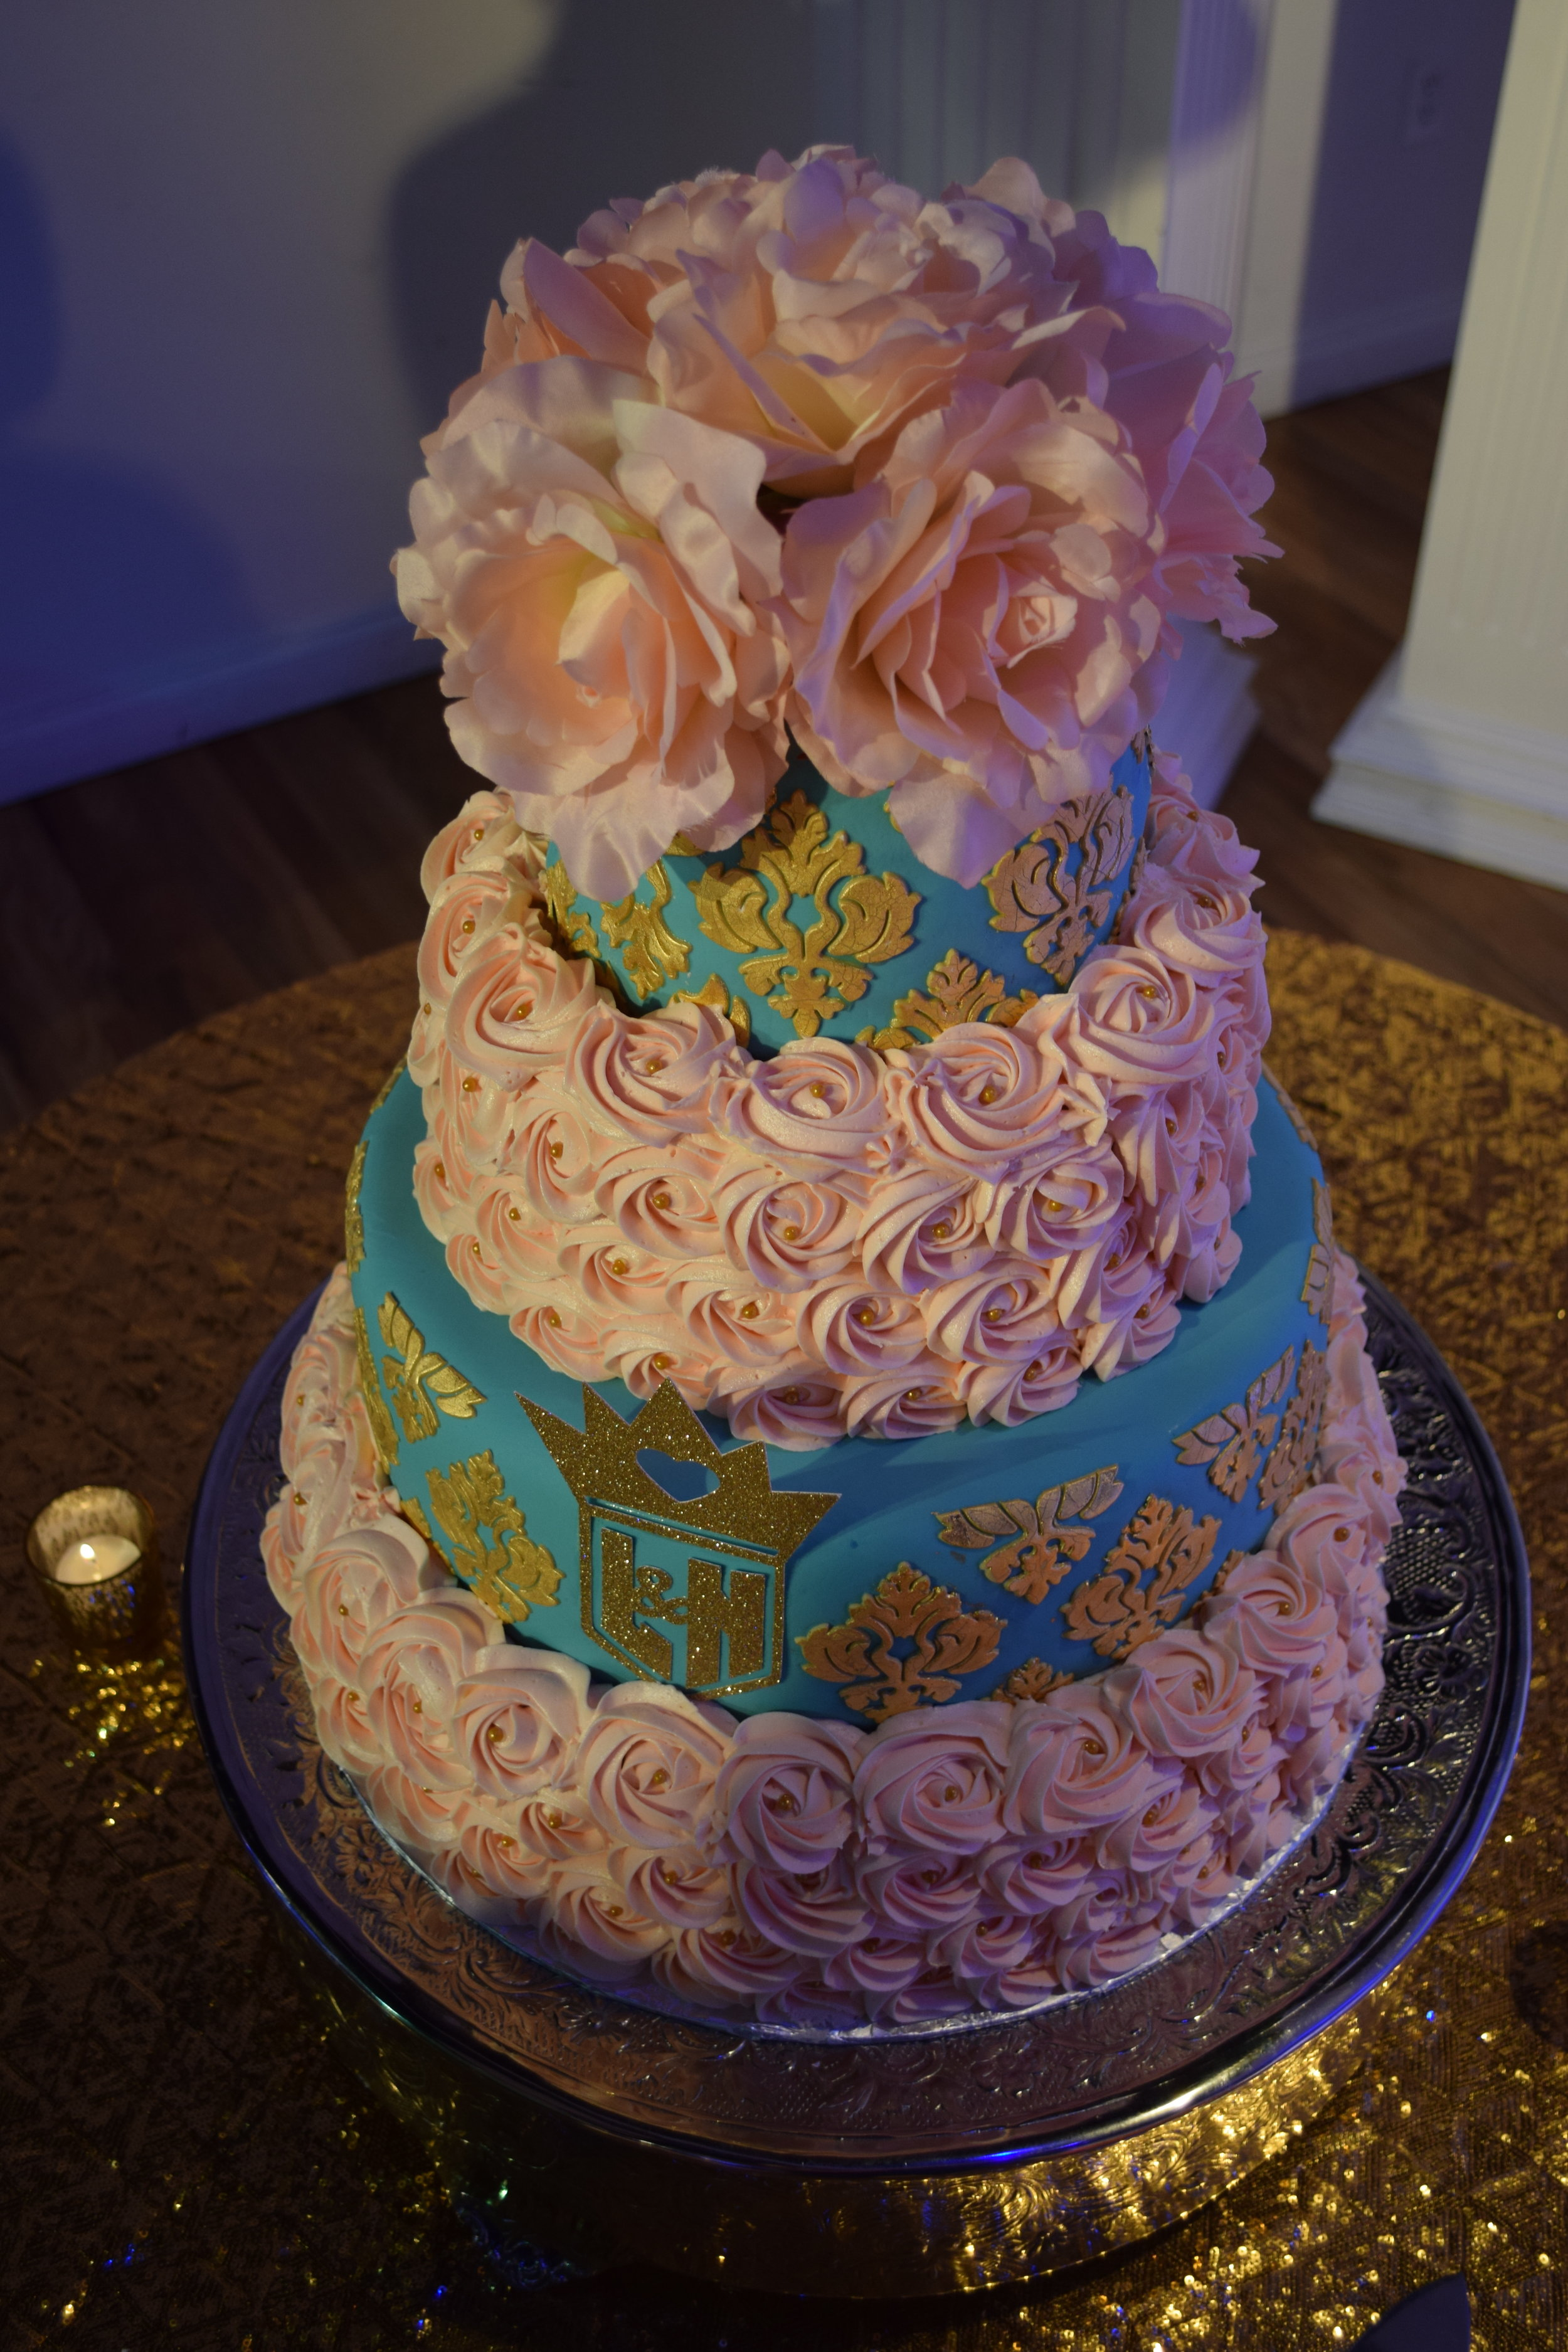 Edible 24 karat Gold Leafing on Fondant Embellishments. Precision Color Matching of buttercream frosting to silk florals on top. Custom cut logo with couples initials.